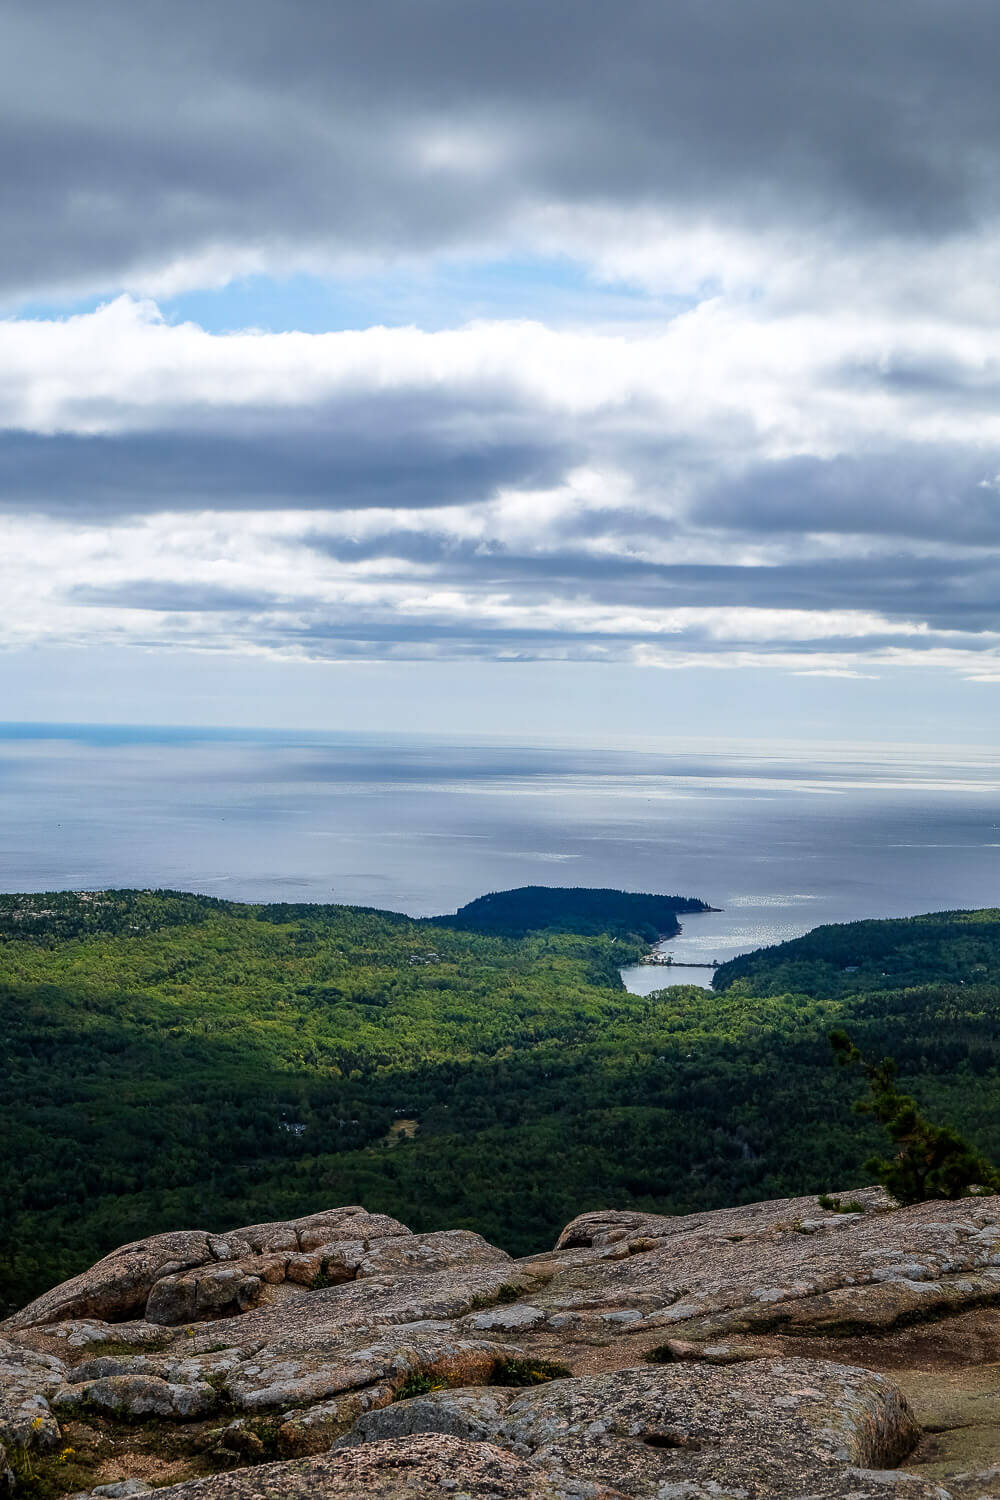 cadillac mountain: One day in acadia national park